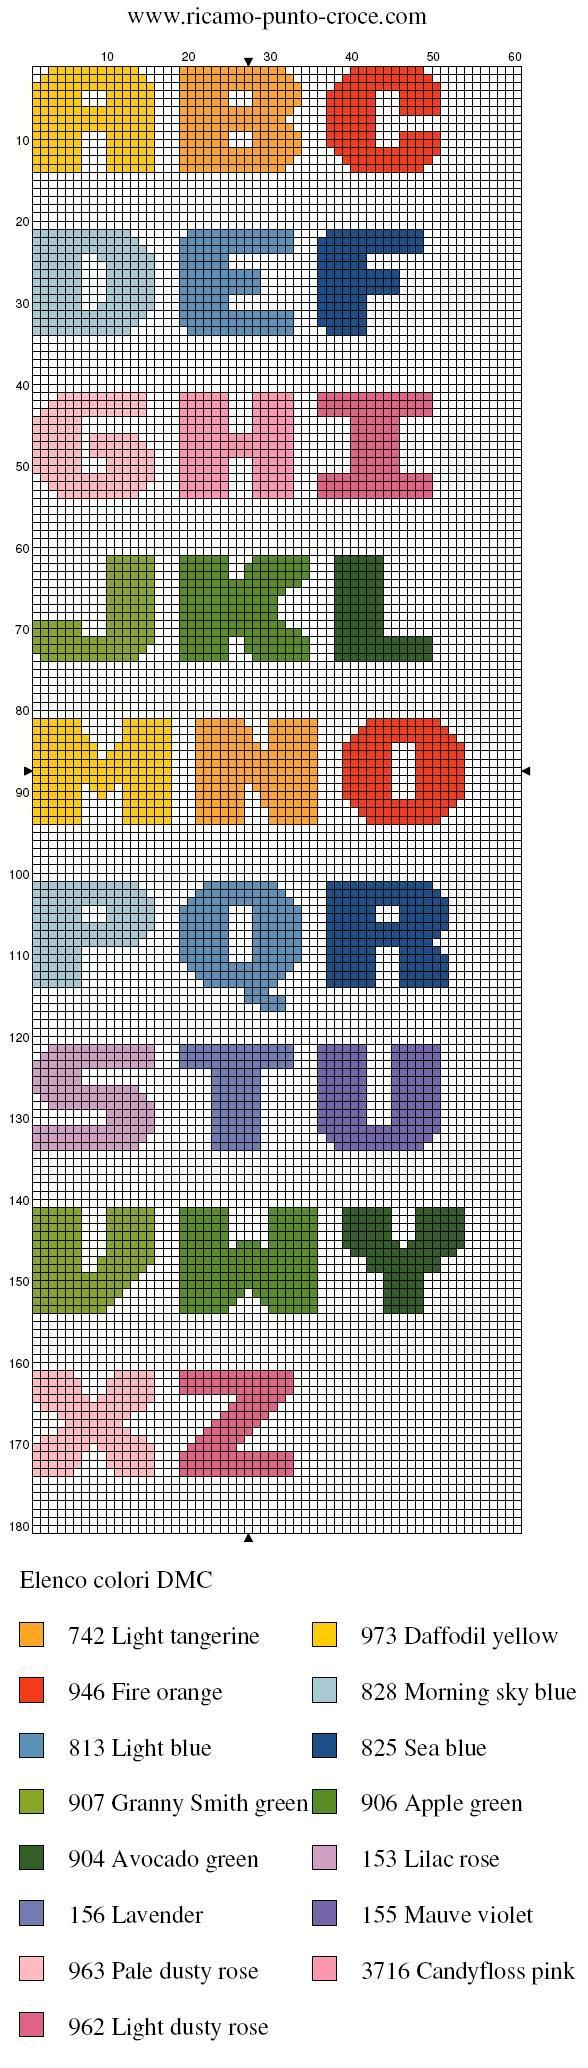 This website has an amazing amount of cross stitch charts that can be used for knitting also!